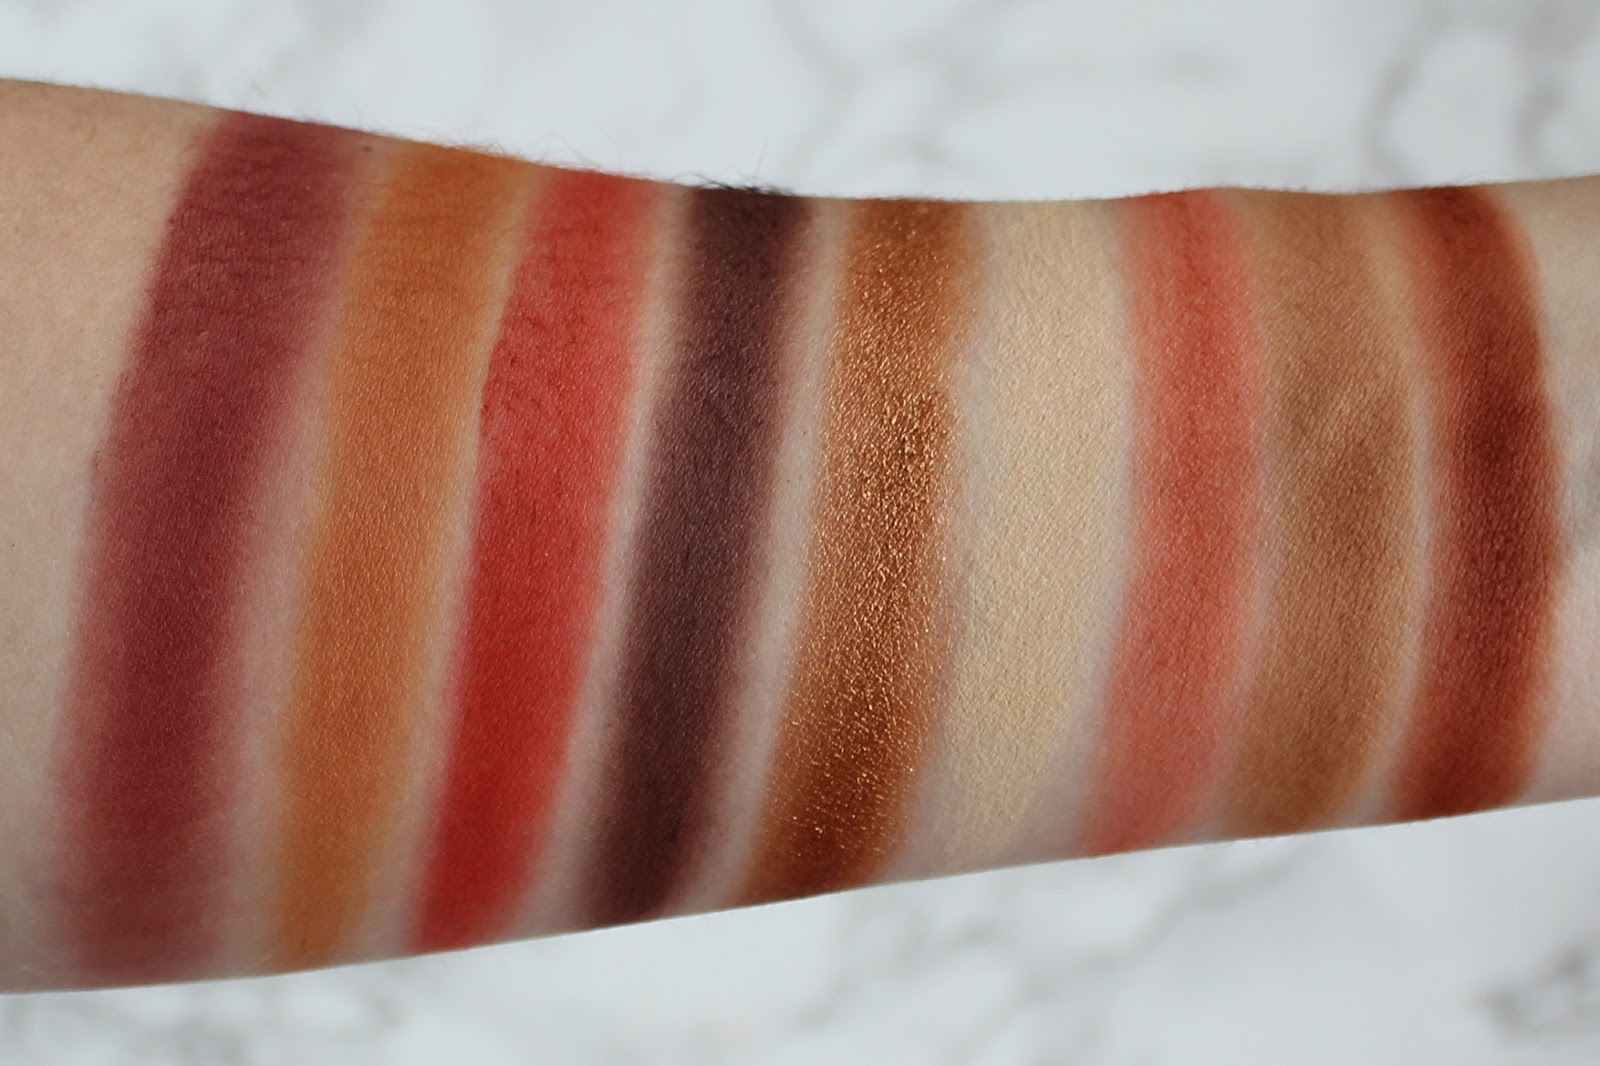 Huda Beauty Warm Brown Obsessions Palette | Review & Swatches